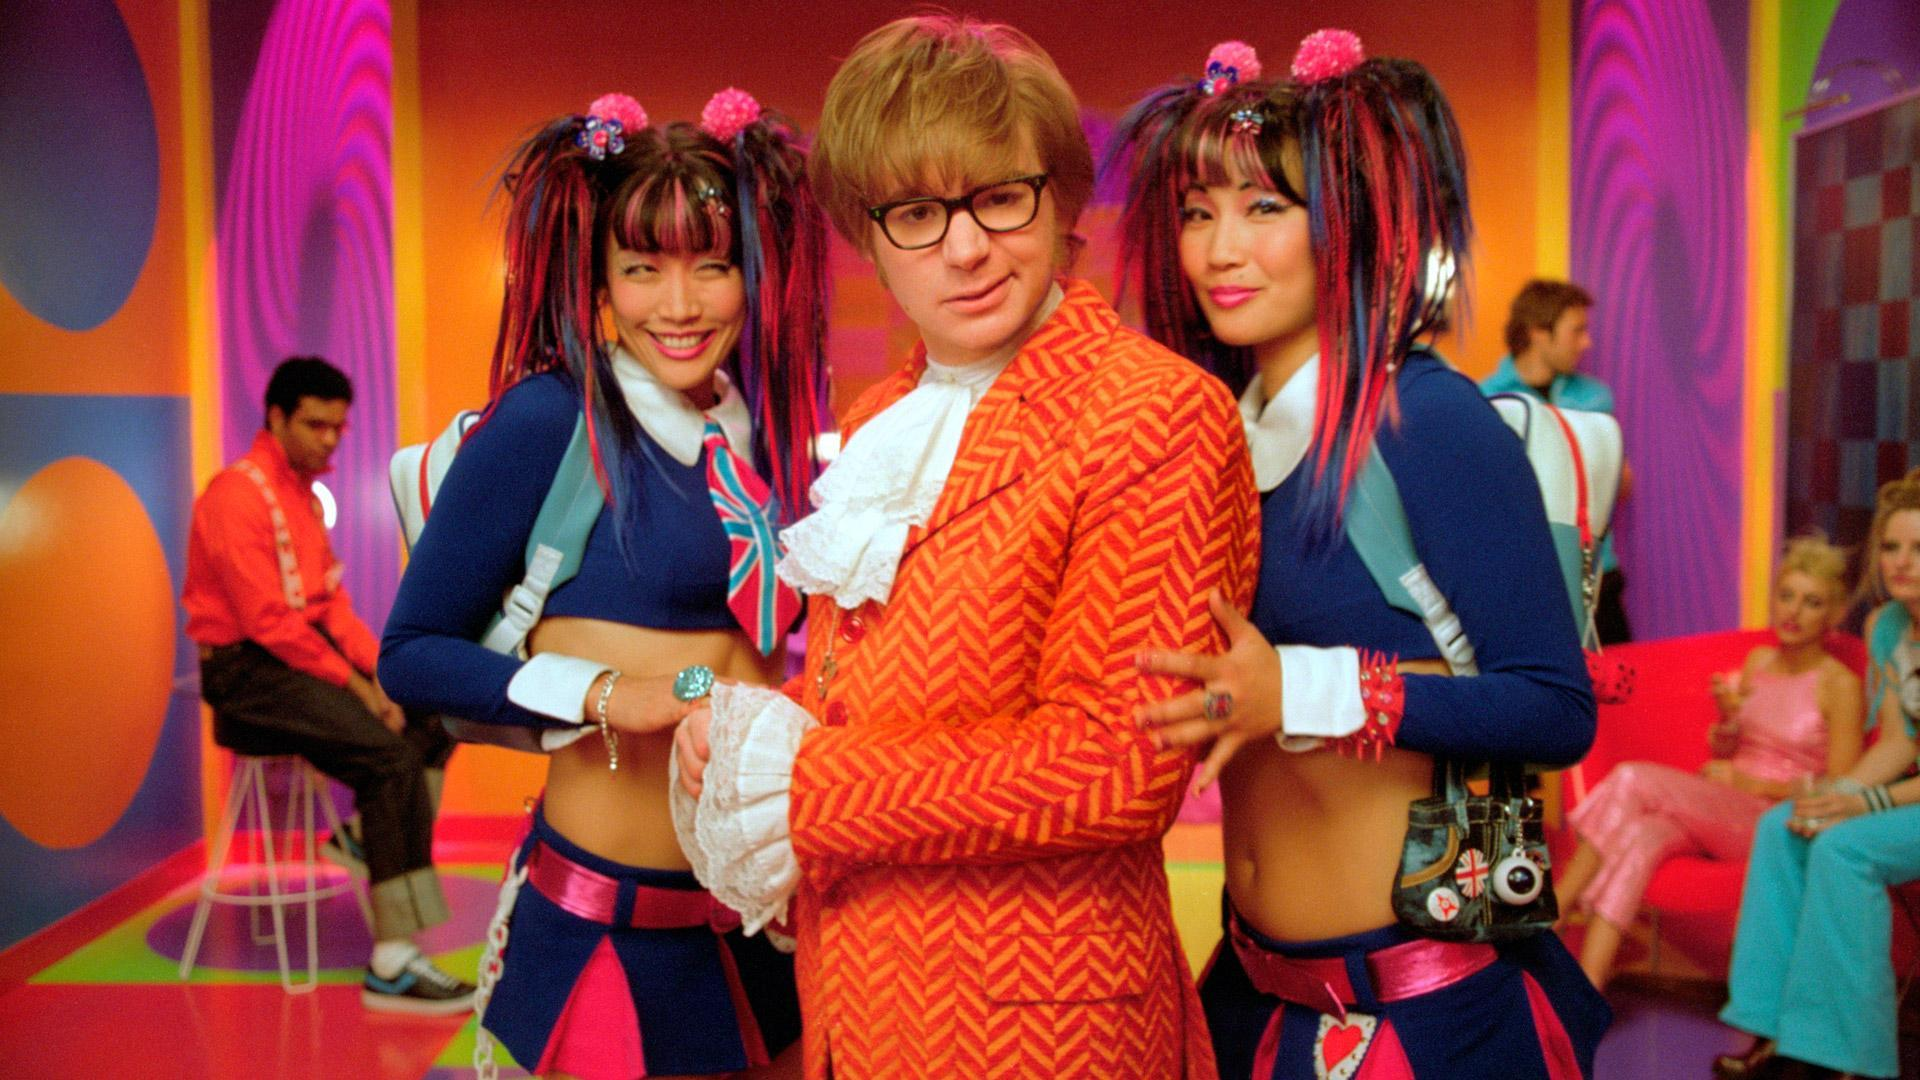 3 Austin Powers in Goldmember HD Wallpapers